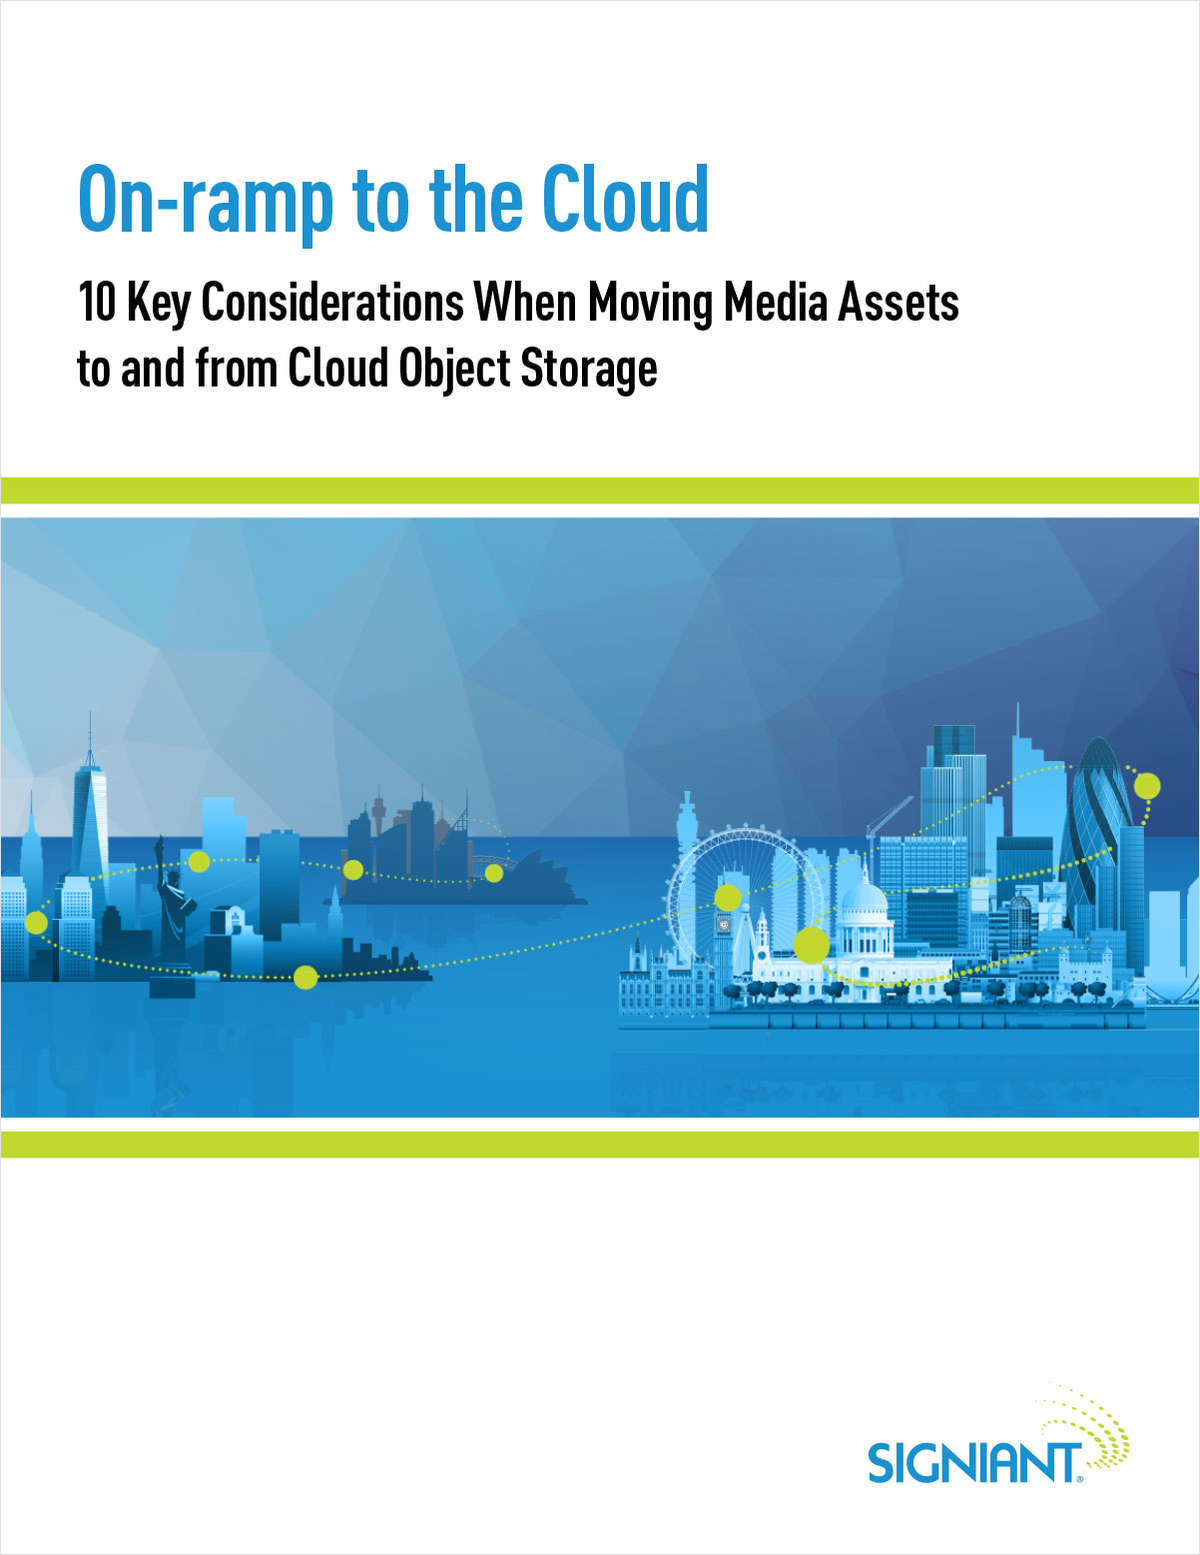 On-ramp to the Cloud